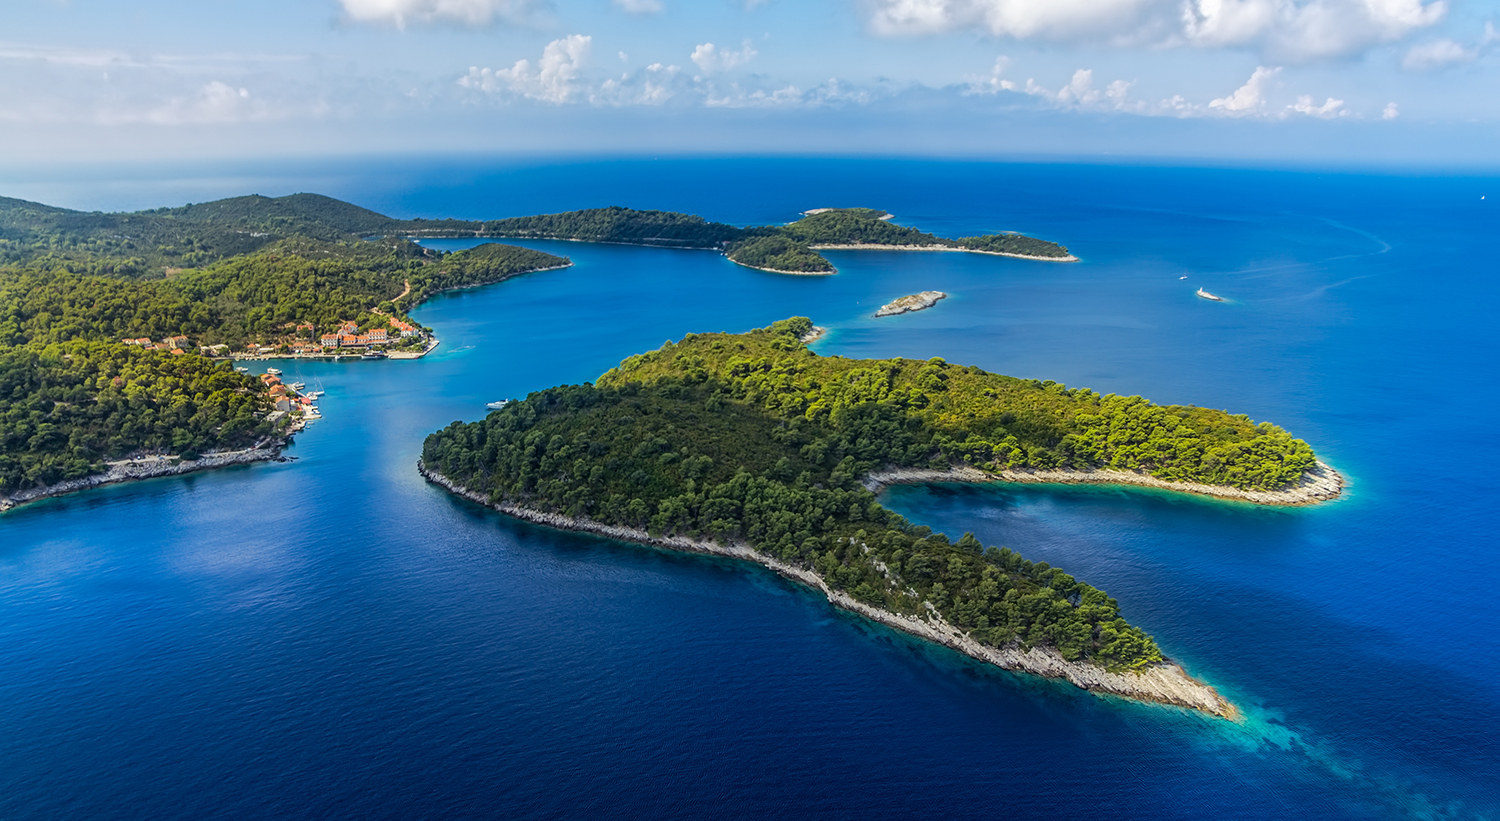 Beautiful Croatia national park-Mljet National Park